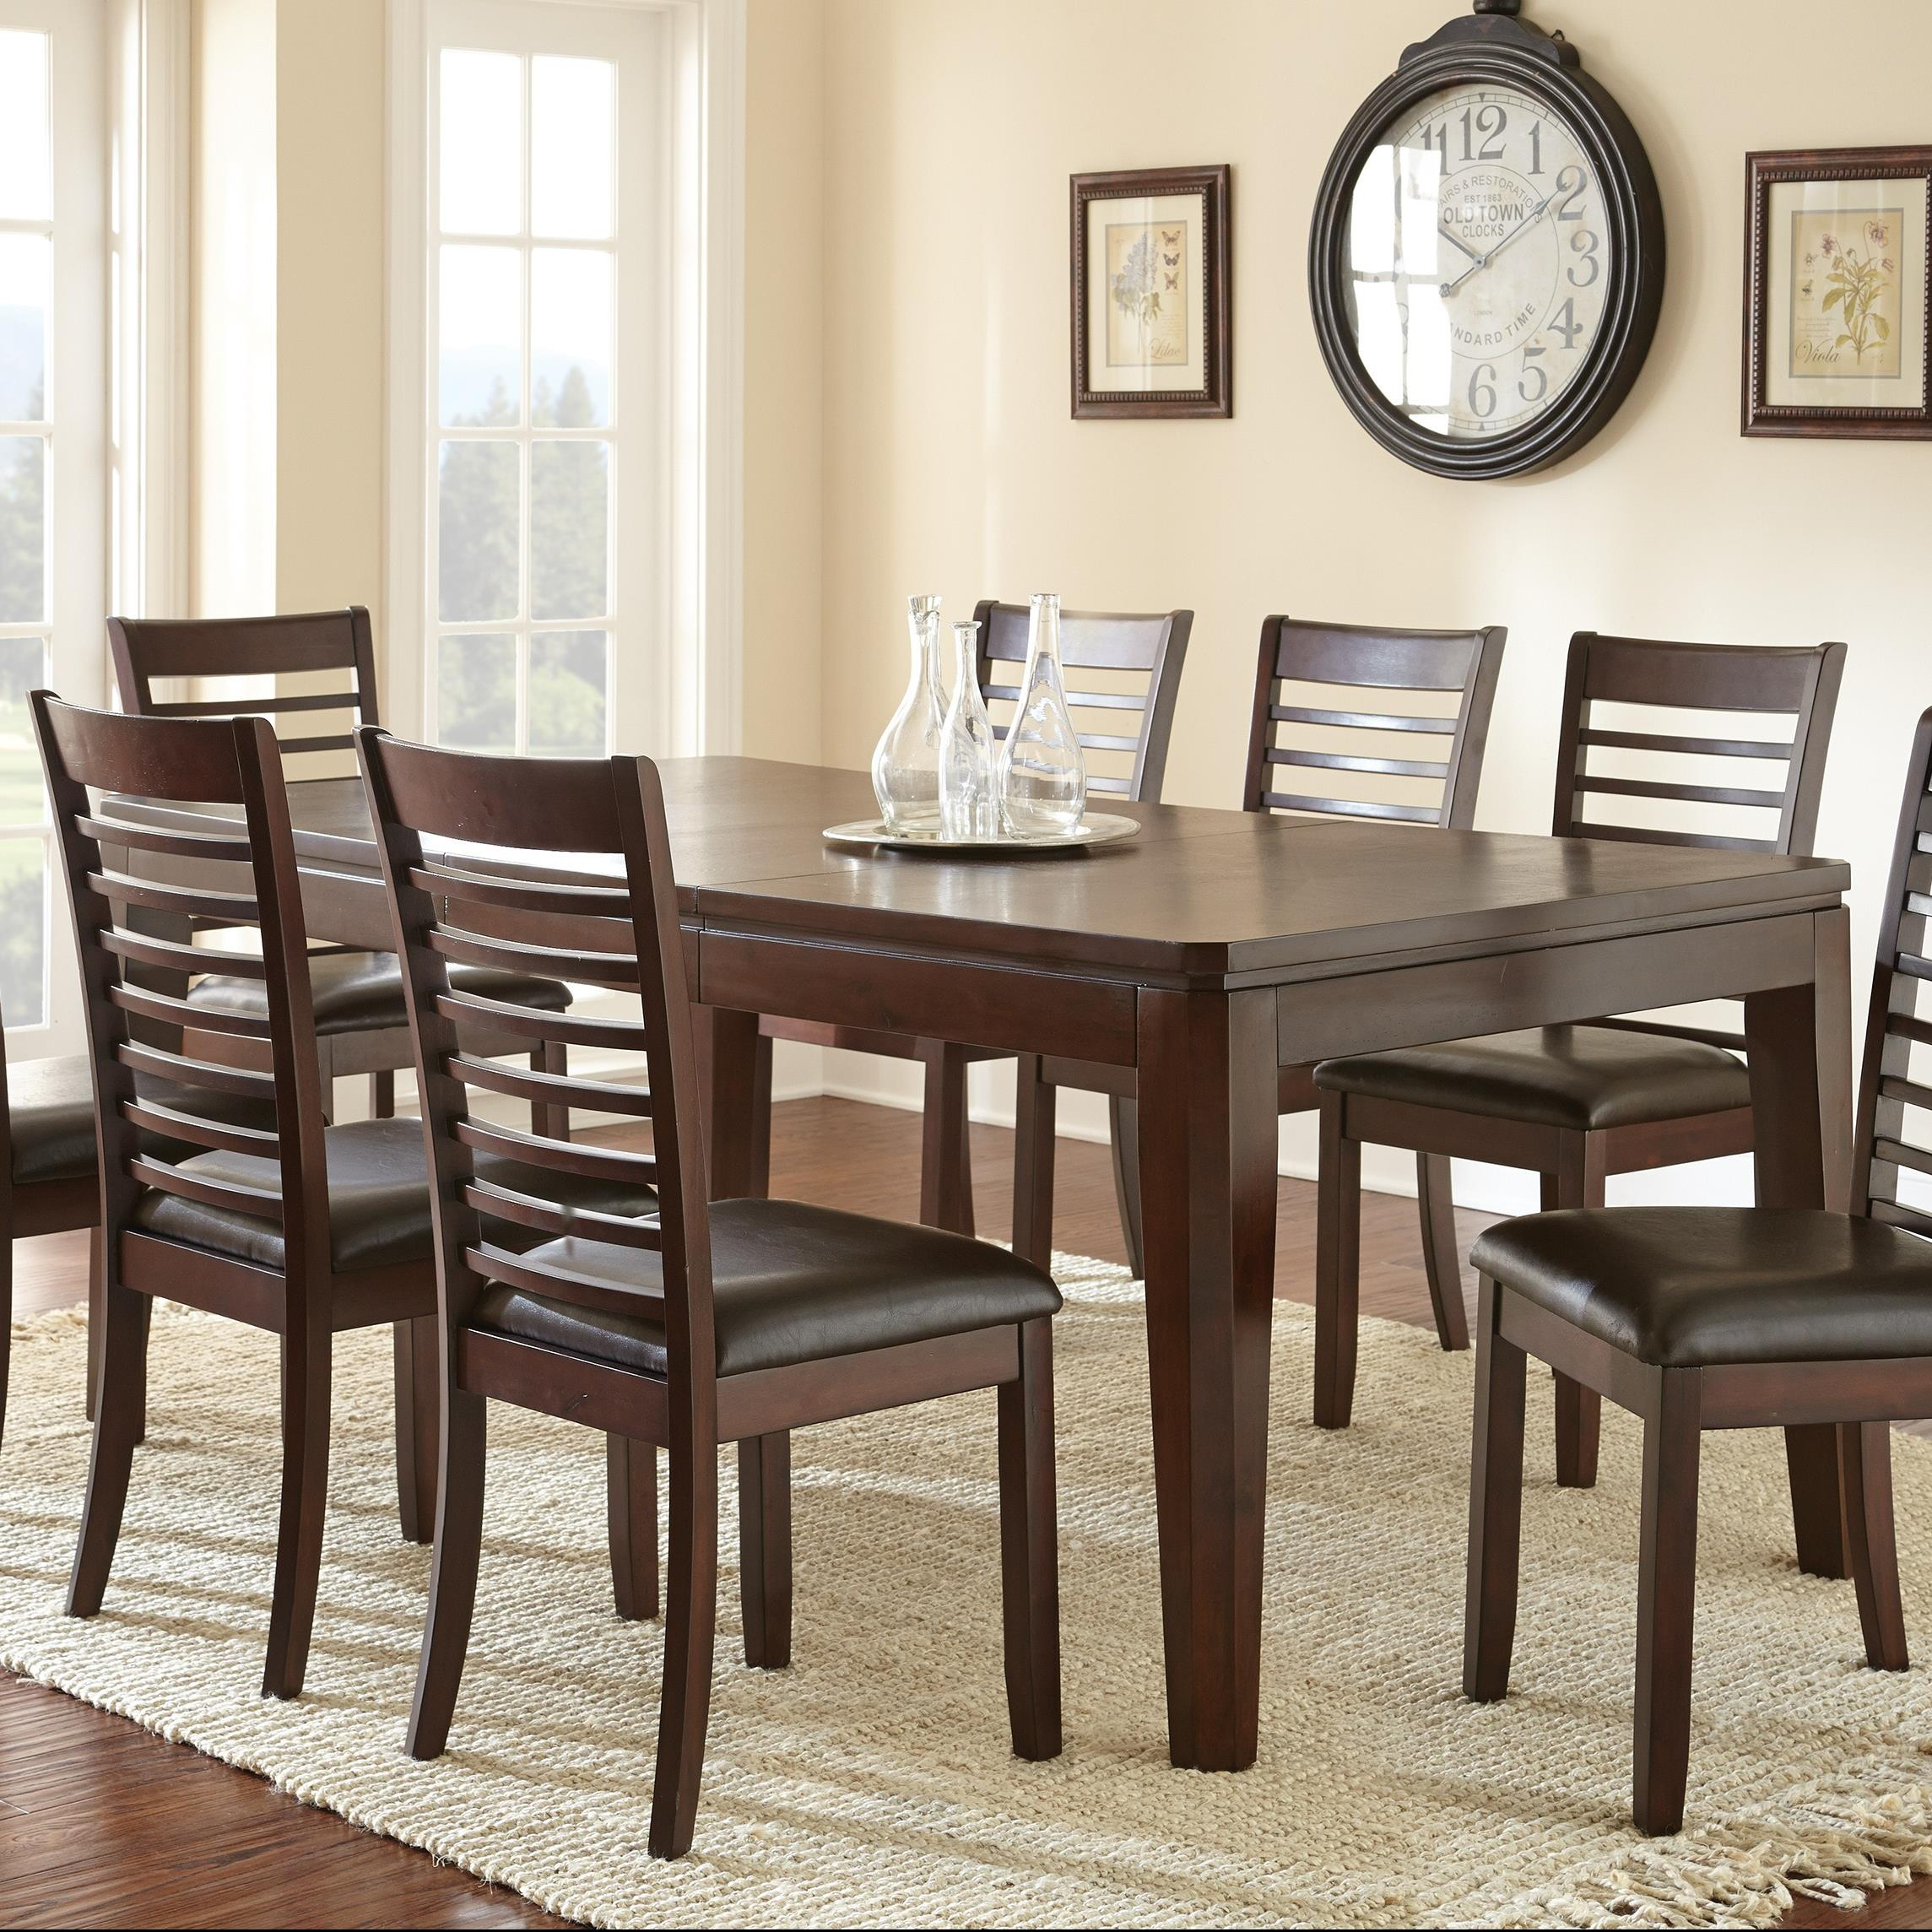 Steve Silver Allison Dining Room Table - Item Number: AS700T